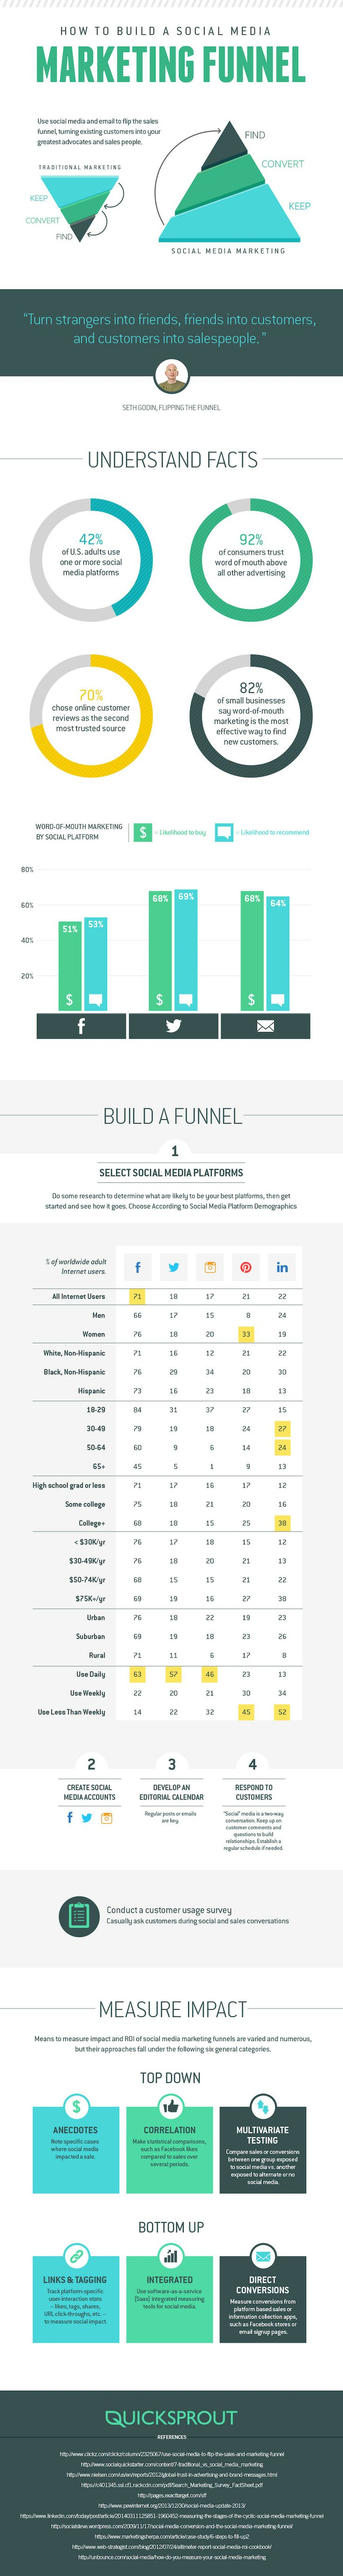 How to build a social media marketing funnel infographic for Marketing to builders